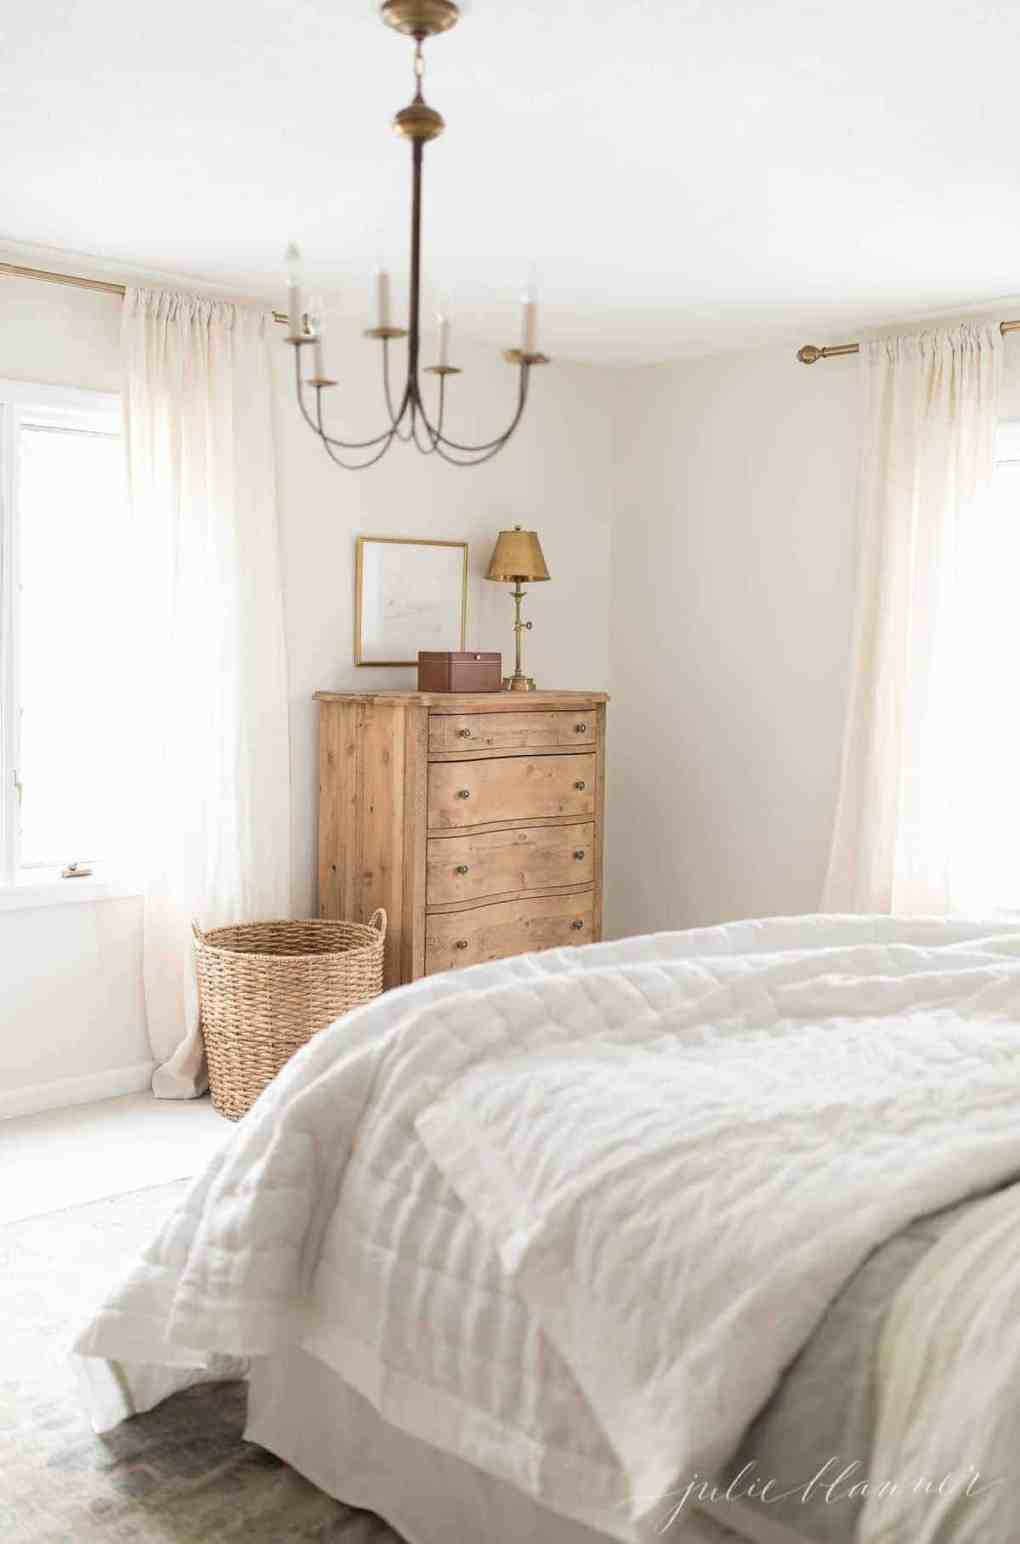 A white bedroom with wooden furniture and a brass chandelier